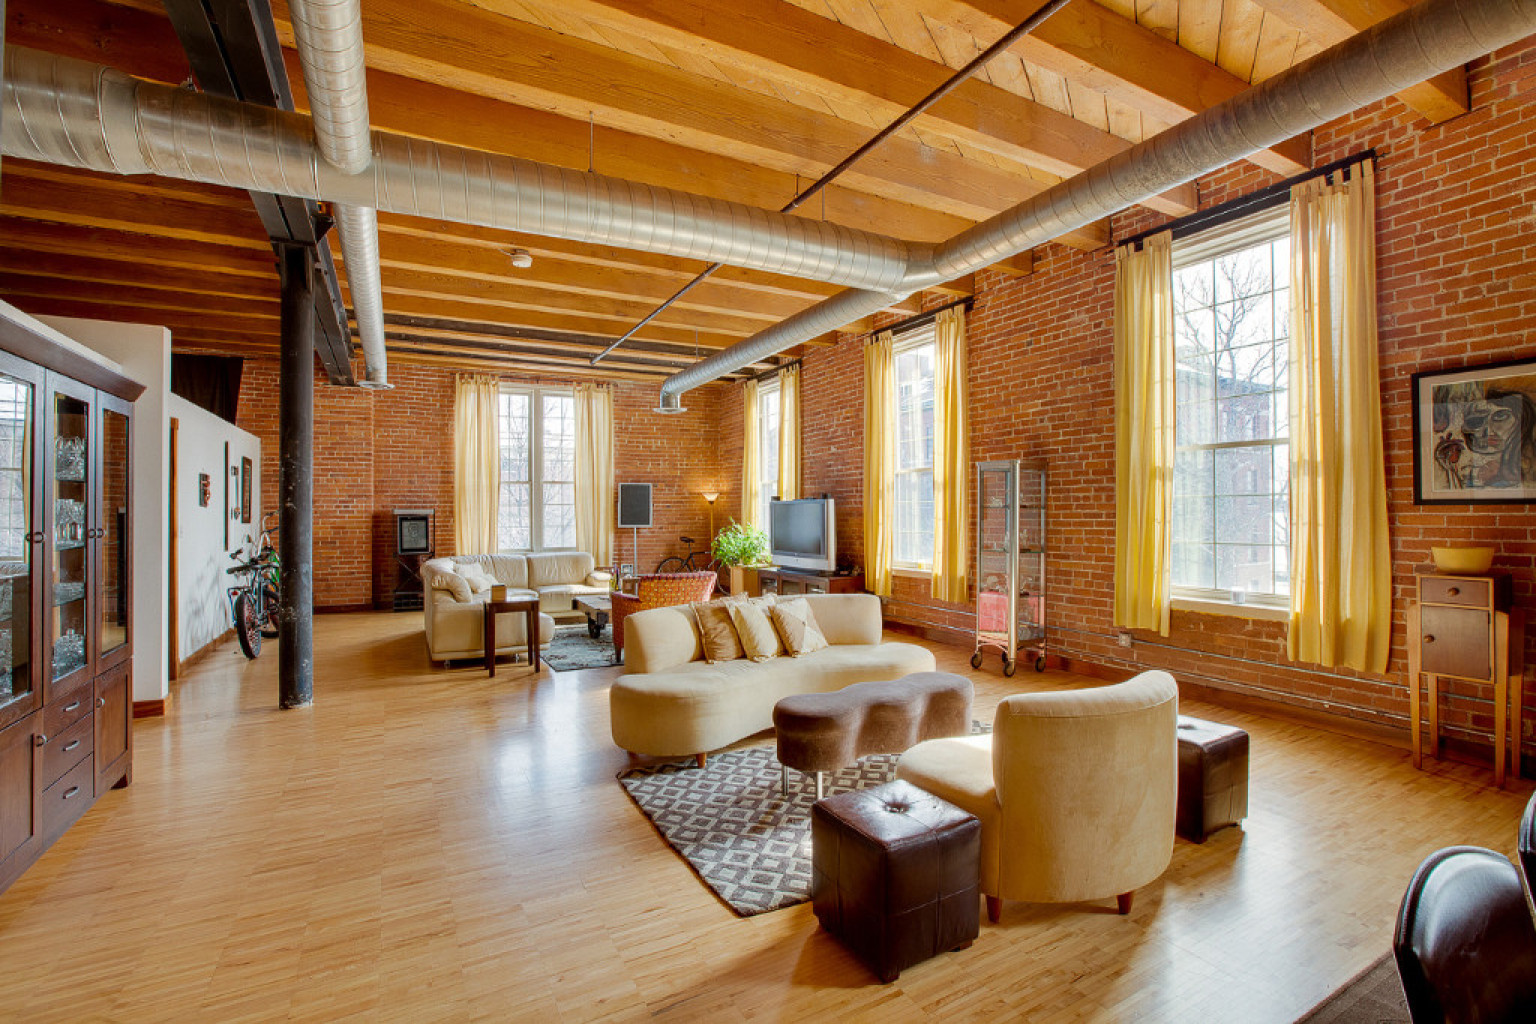 Detroit Lofts Range From Stunningly Luxurious To Affordable But Get One While You Can PHOTOS